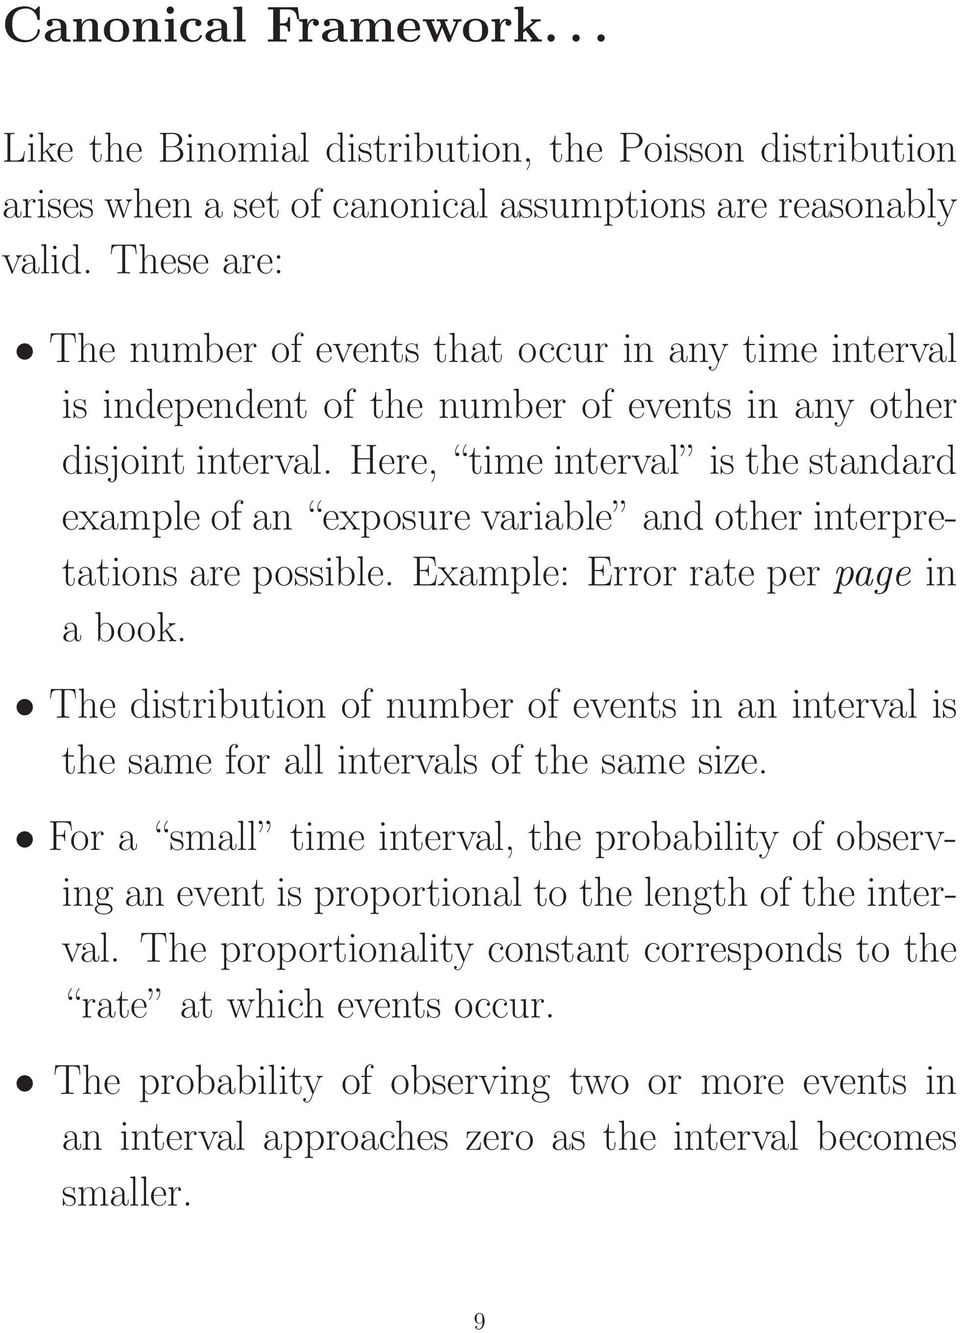 Here, time interval is the standard example of an exposure variable and other interpretations are possible. Example: Error rate per page in a book.